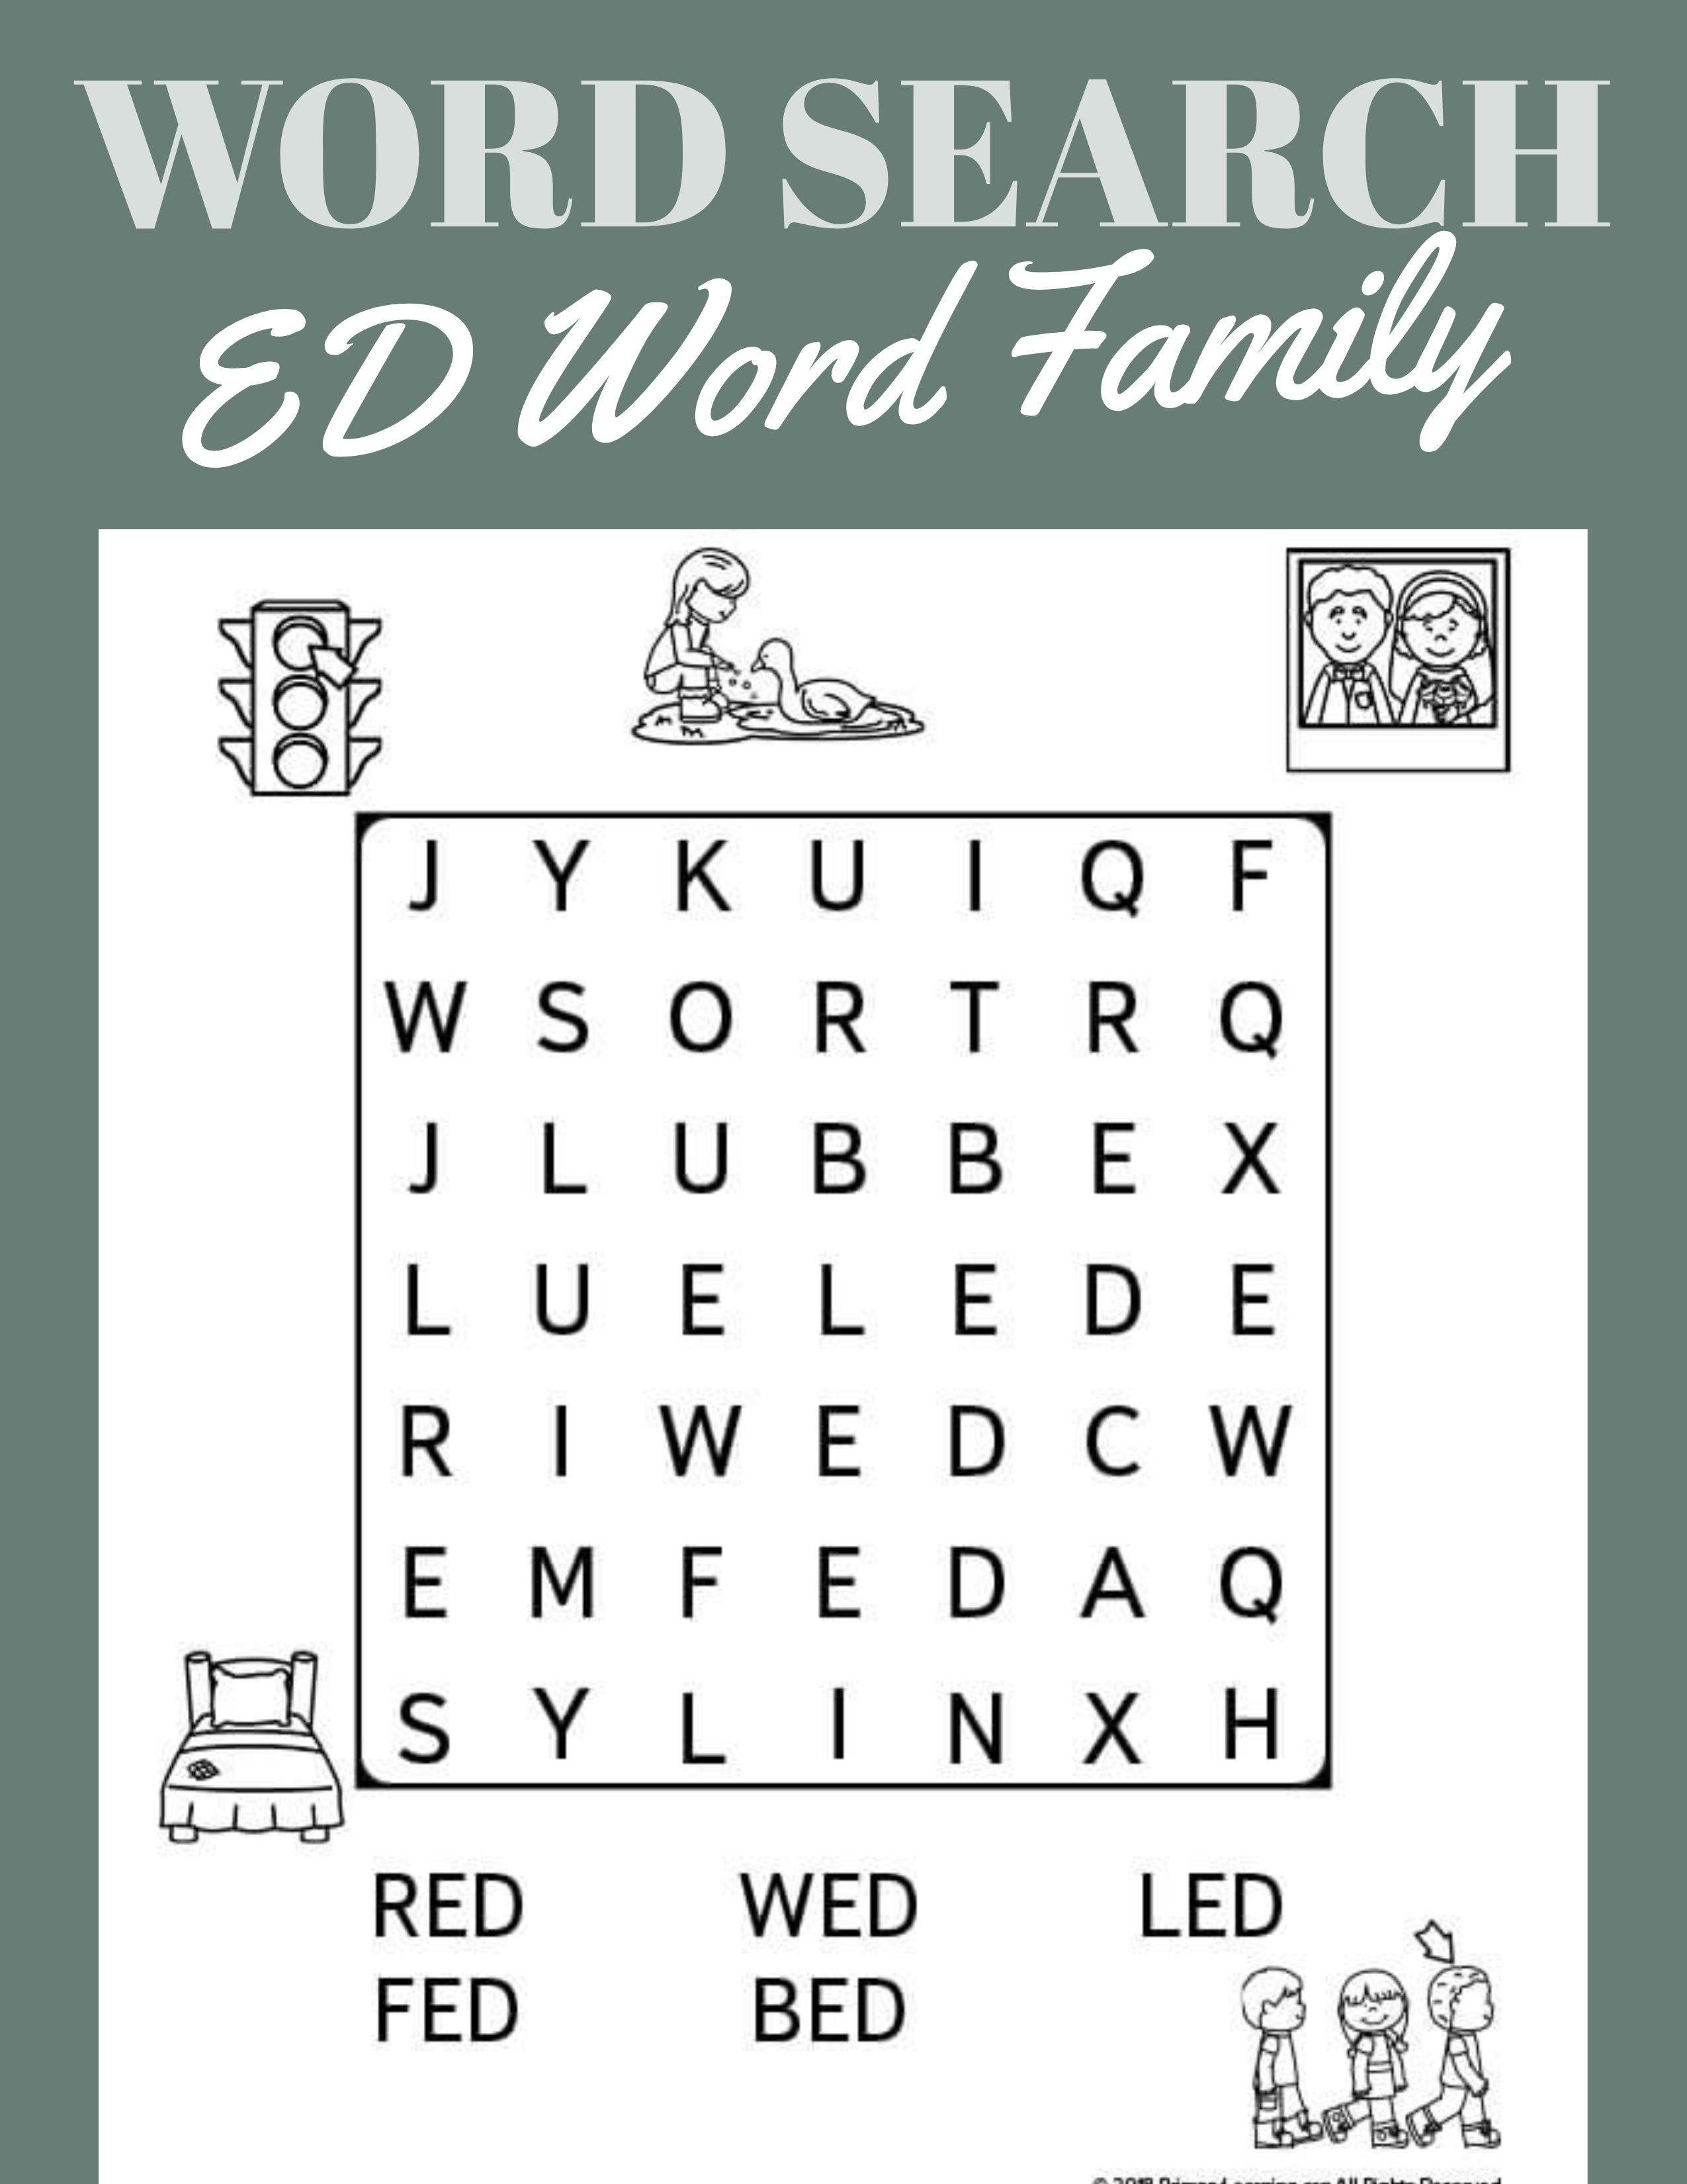 Ed Word Family Word Search Primarylearning Org Word Families Free Homeschool Resources Teaching Homeschool